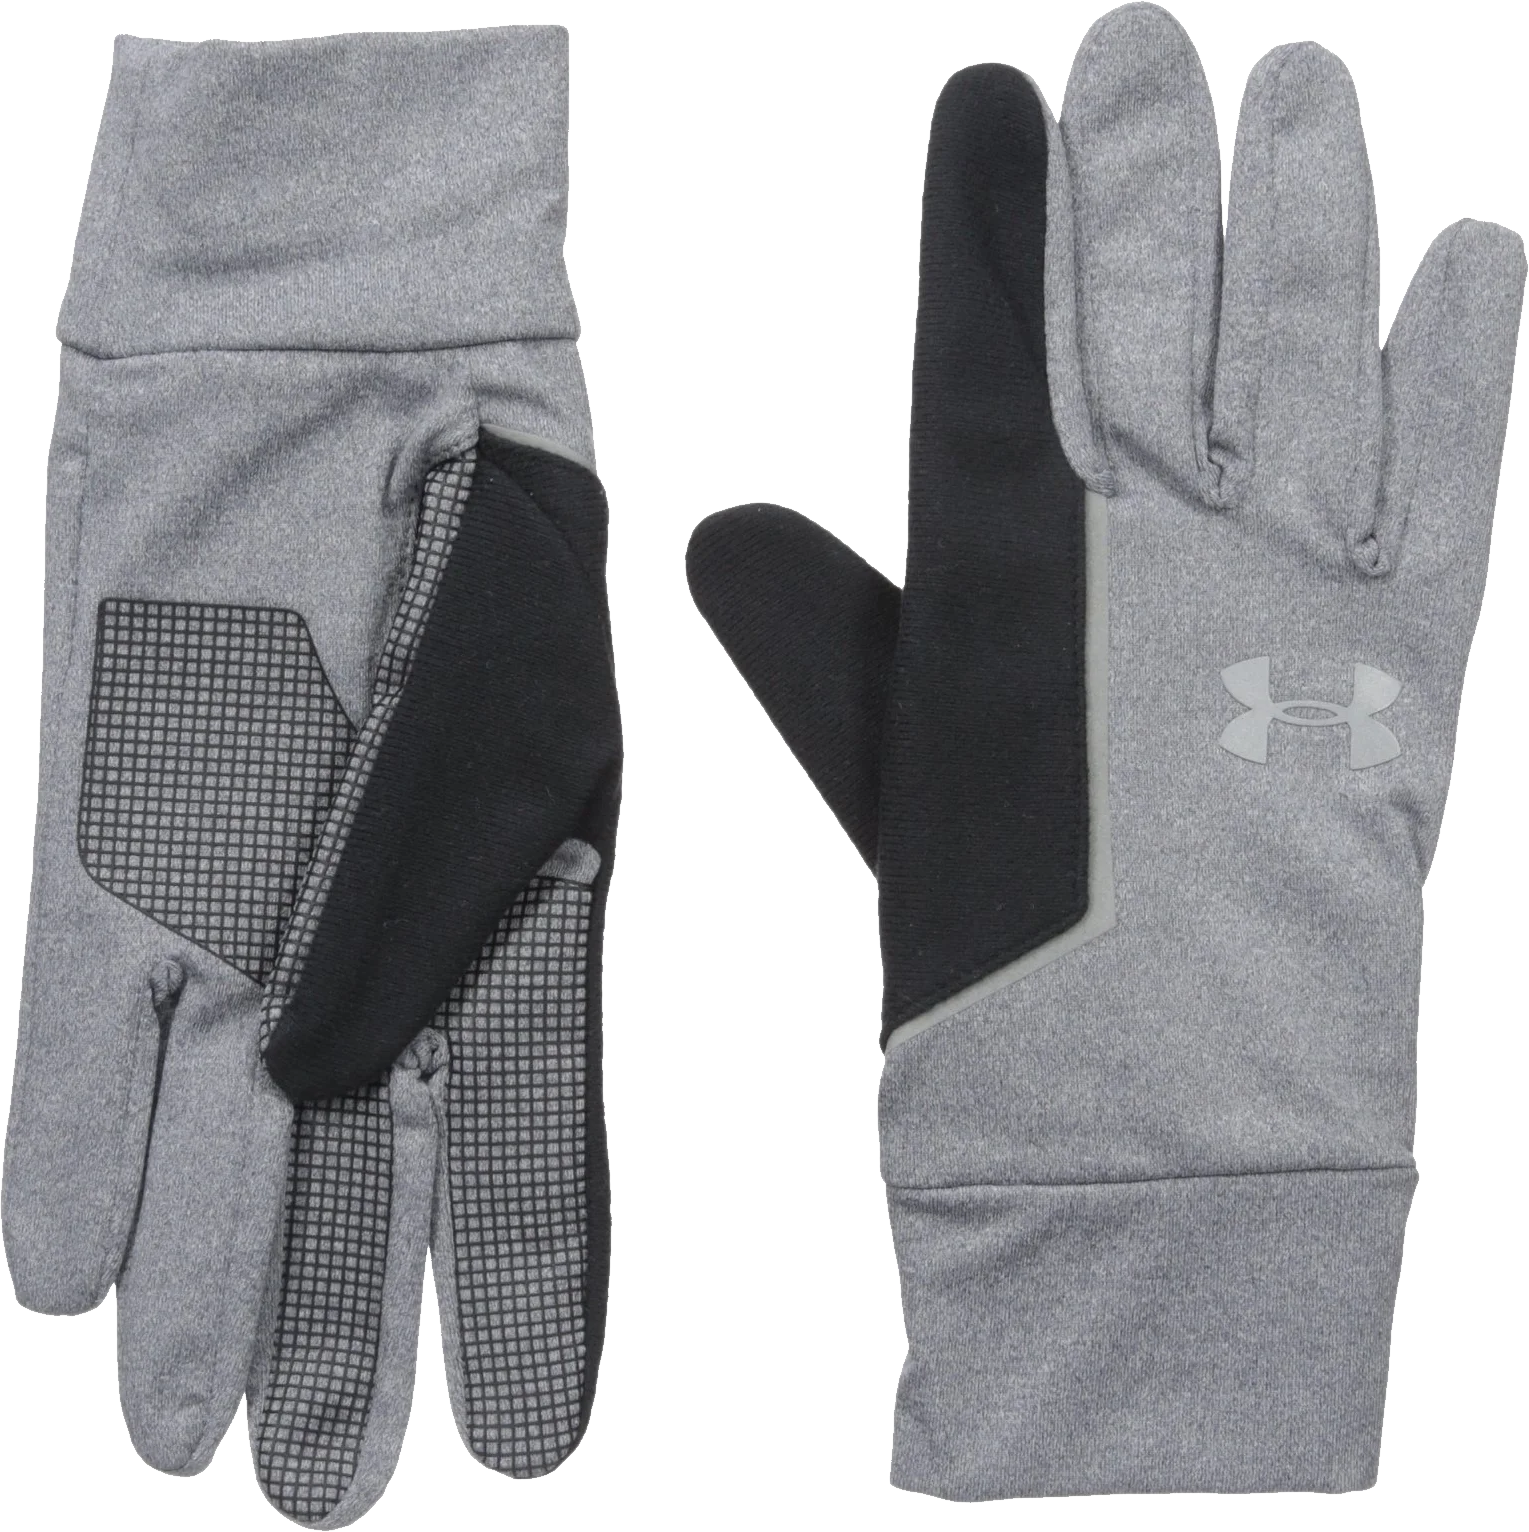 uploads gloves gloves PNG80296 4